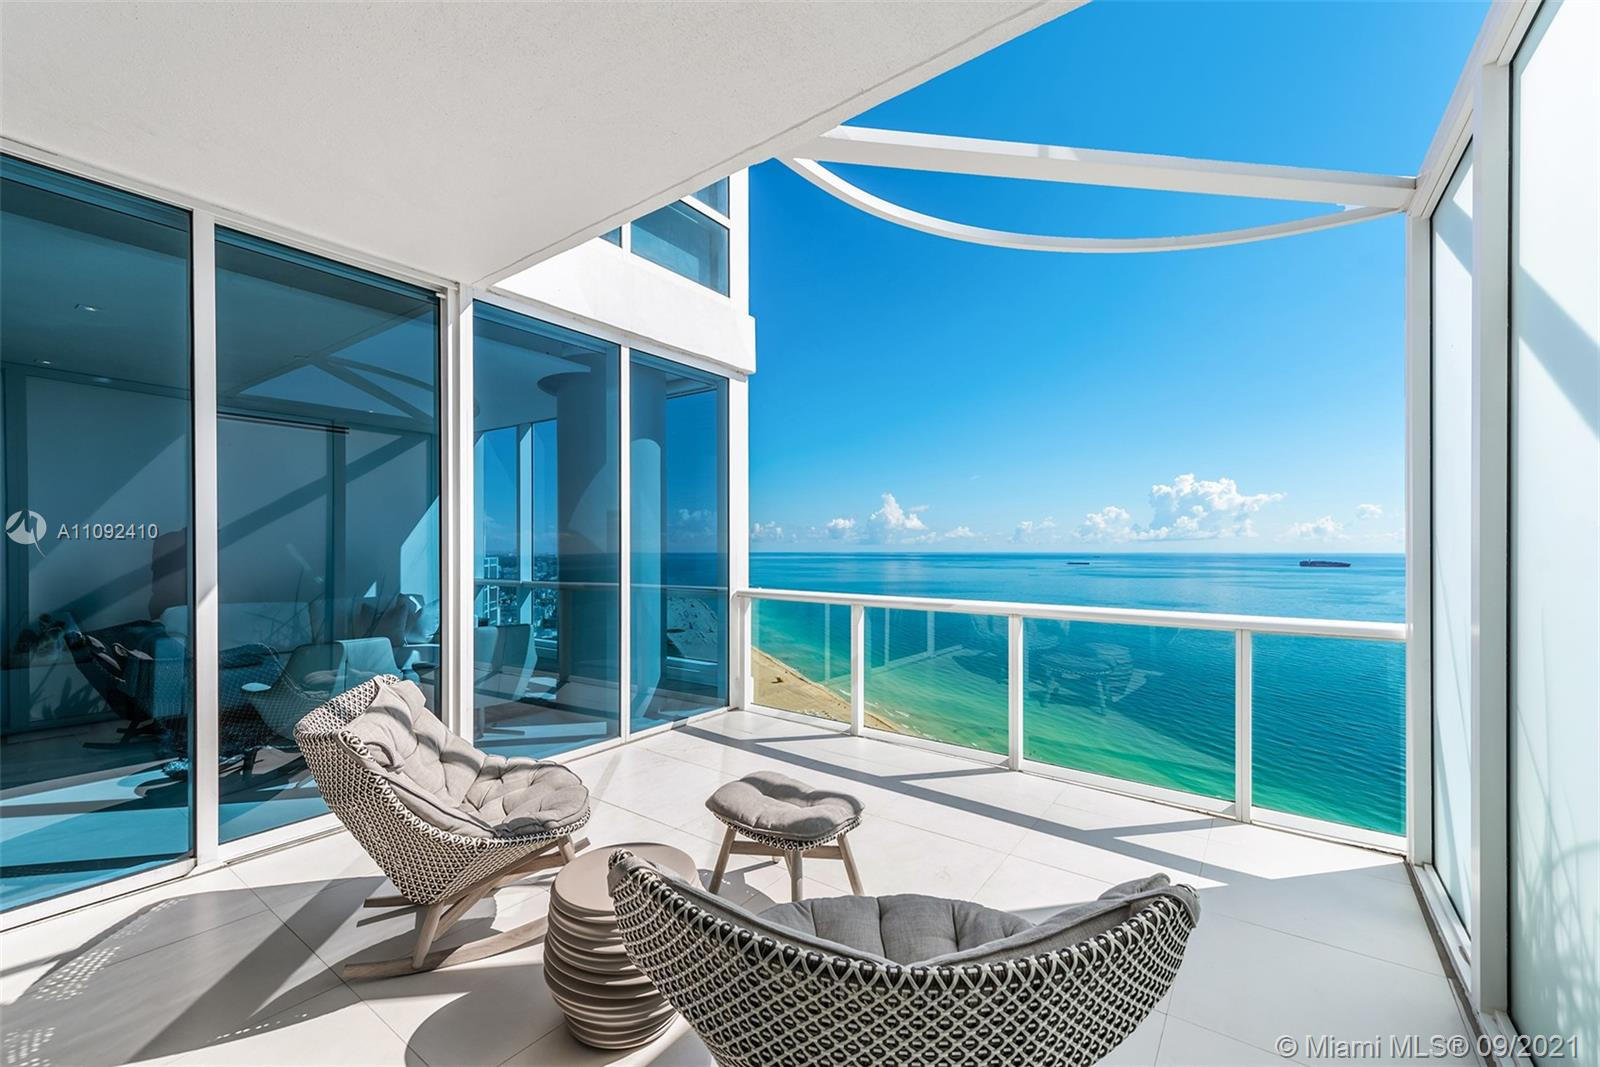 Welcome to this completely upgraded masterpiece perched on the 36th floor above the Atlantic, through a private elevator lobby and impressive designer vault door. An open concept custom marble kitchen with Miele and Subzero appliances flows out onto the living areas. A unique and profound double depth balcony featuring al fresco dining space with unequaled beach views, from South Pointe Beach to Sunny Isles. It's a showpiece!  The primary suite features custom built-ins, extensive walk-in closet, unparalleled waterfall massage and luxurious soaking tub with ocean views. Smart home with Crestron + Sonos integrated sound system controlled by iPad. Continuum is a 13 acre, private beachfront sanctuary including a private restaurant + beach club, 3 har-tru tennis courts, gym/spa/salon +3 pools.